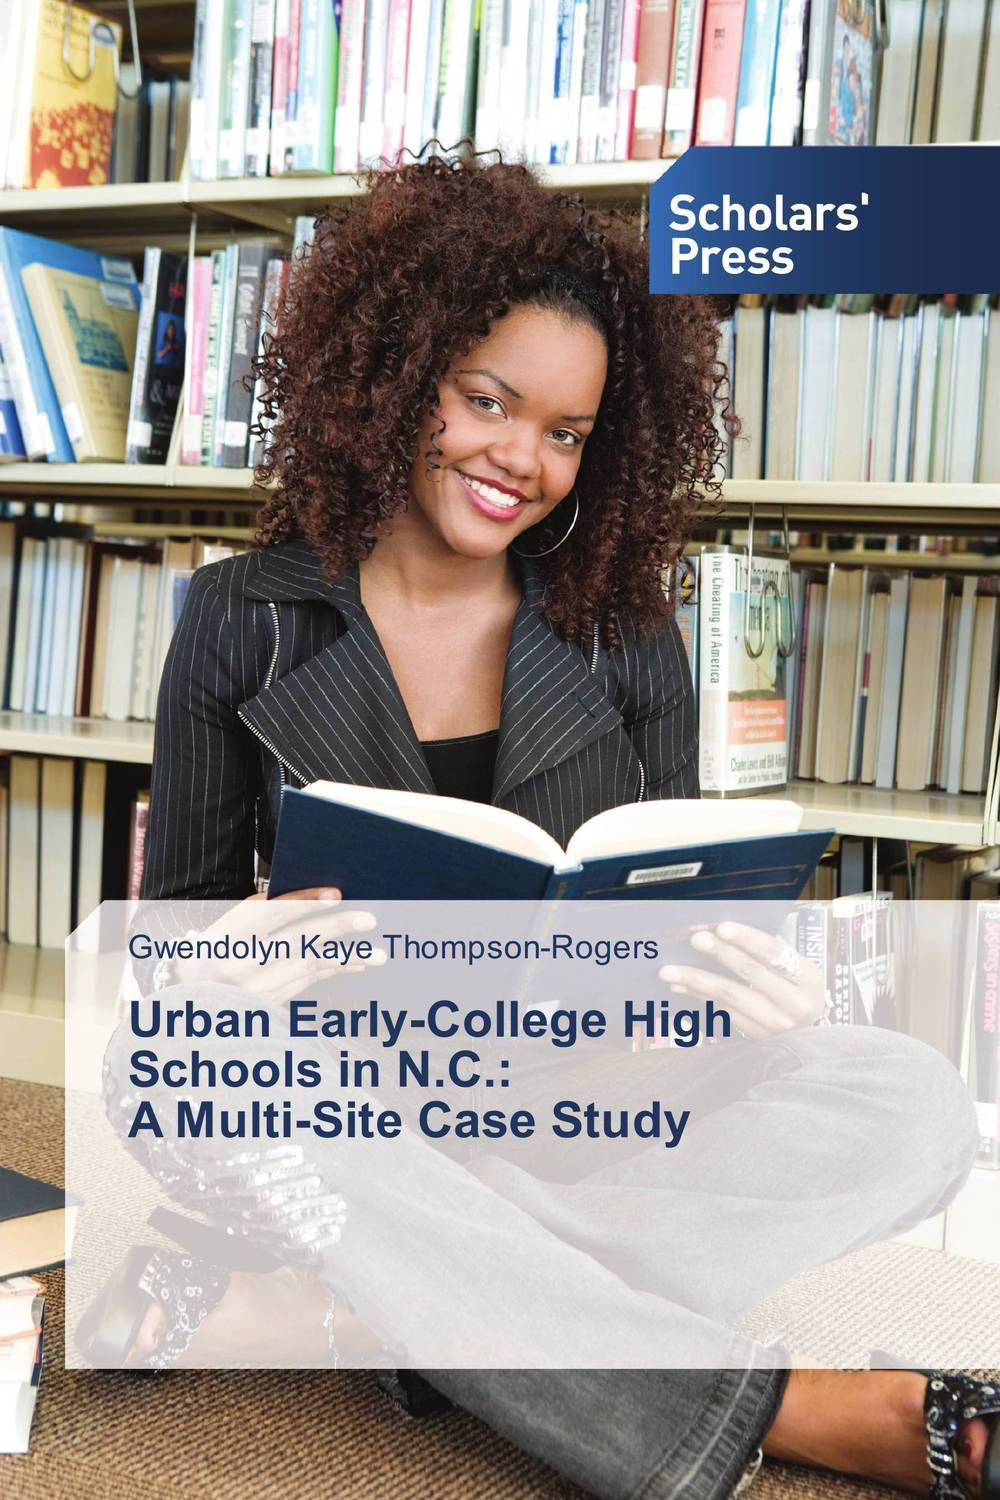 Urban Early-College High Schools in N.C.: A Multi-Site Case Study martinez